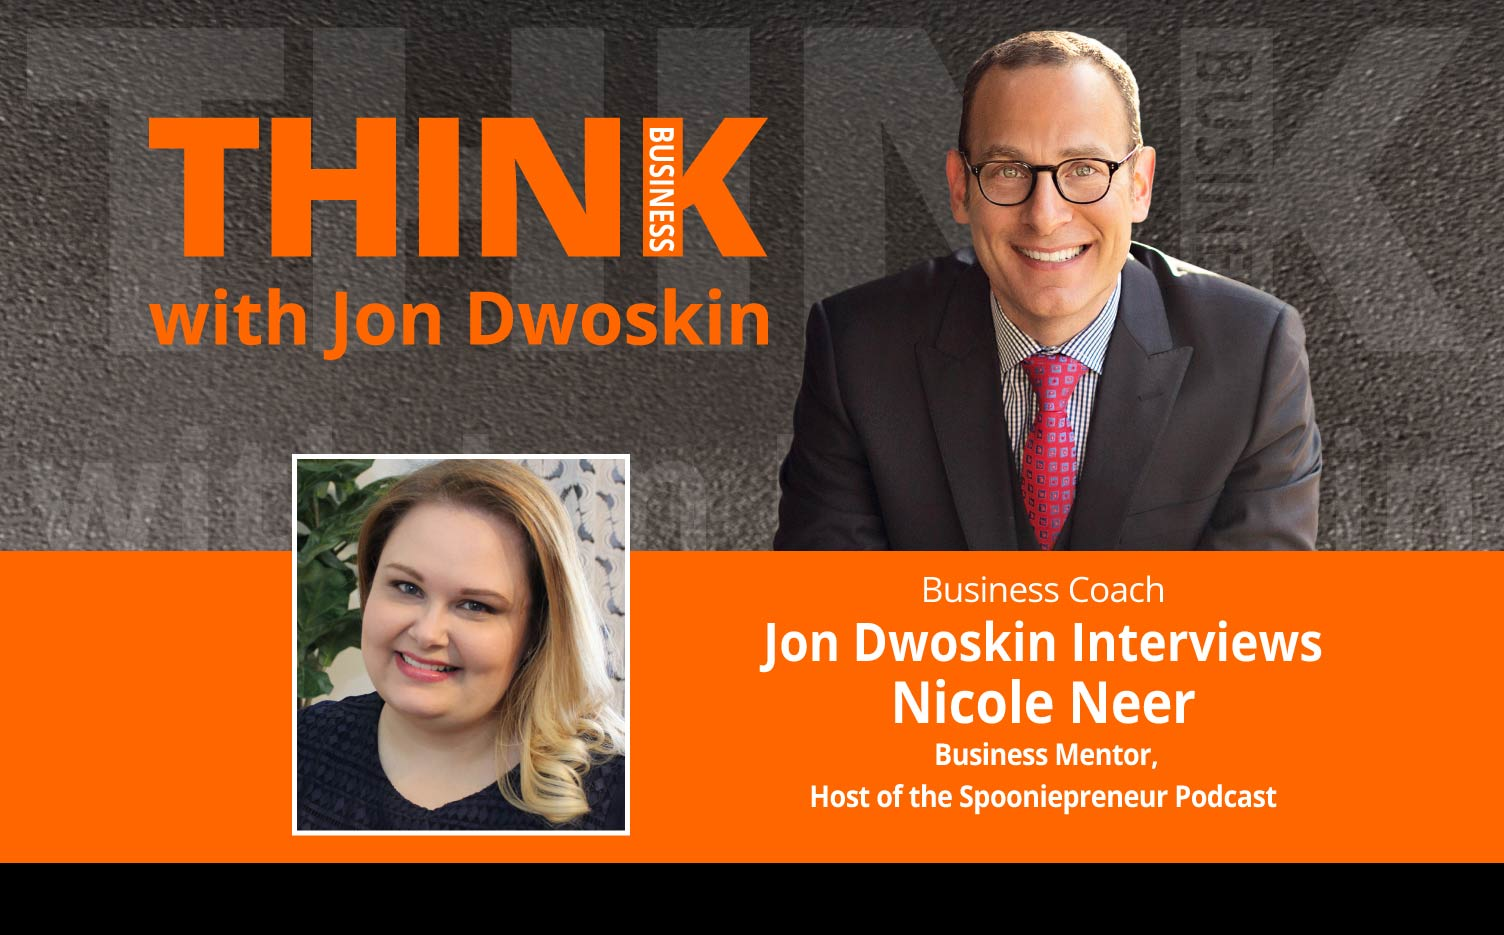 THINK Business Podcast: Jon Dwoskin Interviews Nicole Neer, Business Mentor, Host of the Spooniepreneur Podcast